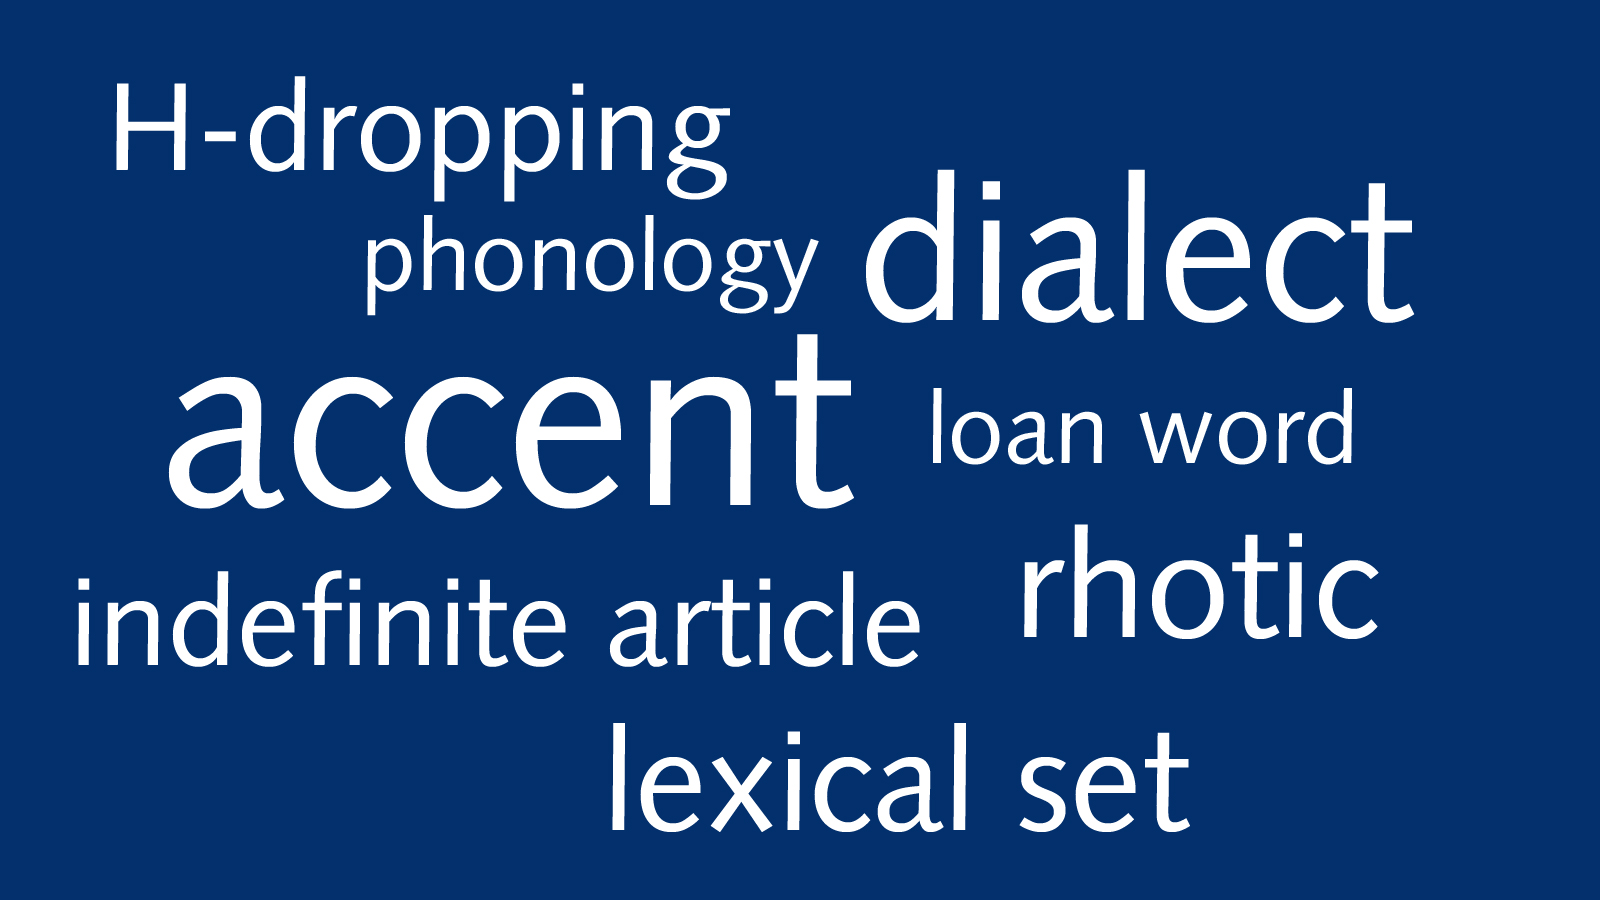 Word cloud containing technical terms relating to accents and dialects